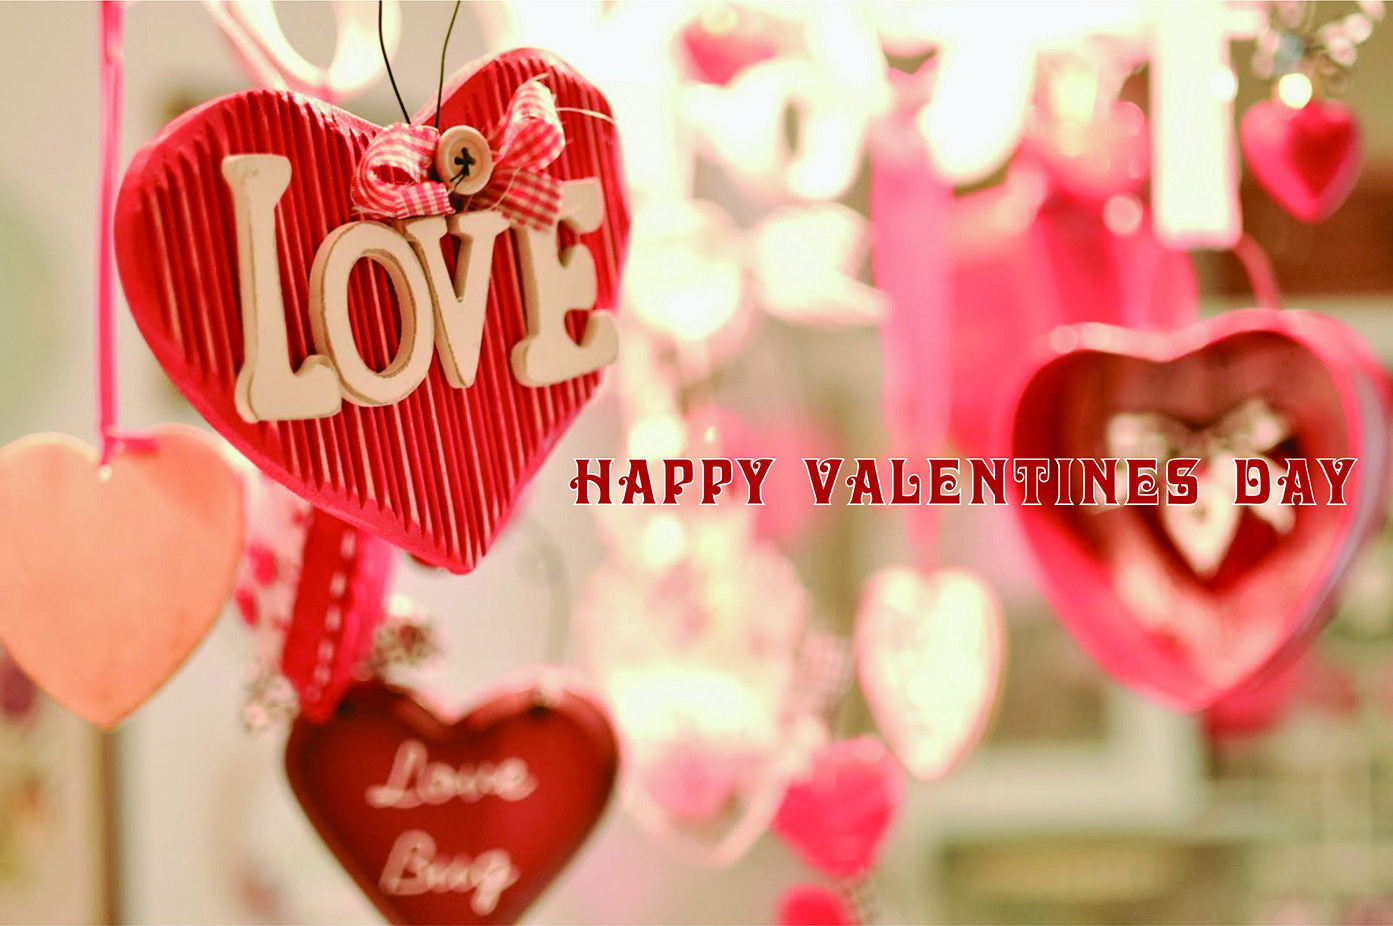 cute-love-quotes-for-your-boyfriend-for-valentines-day-hd-my-valentine-2014---valentines-day-live-wallpapers-wallpaper